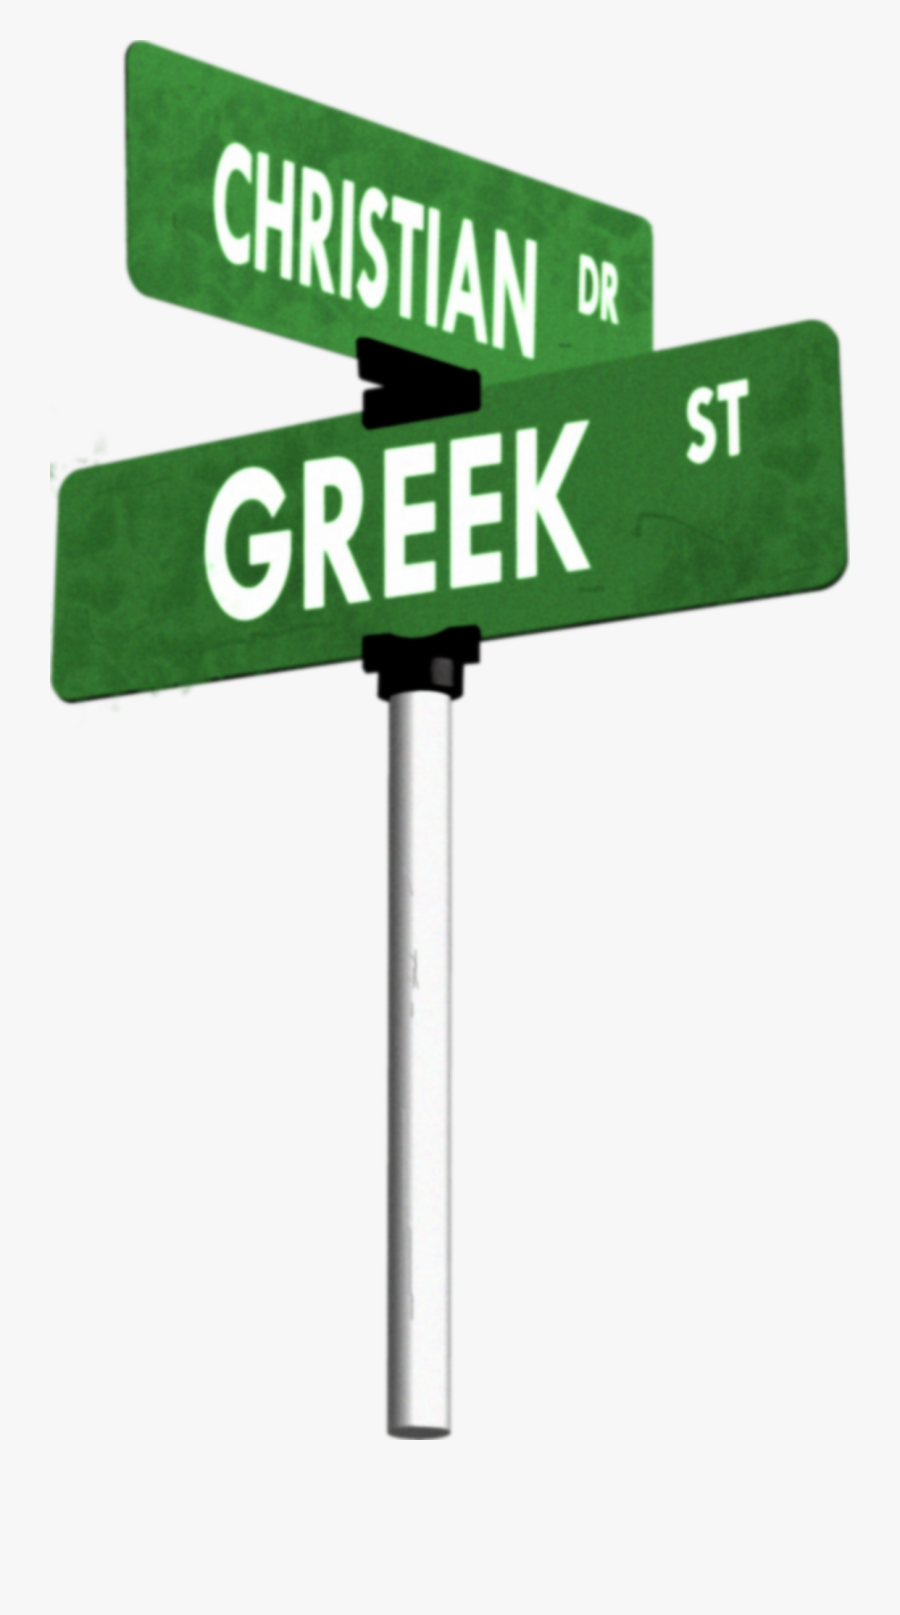 Clip Art Png For Free - Cross Street Sign Vector, Transparent Clipart